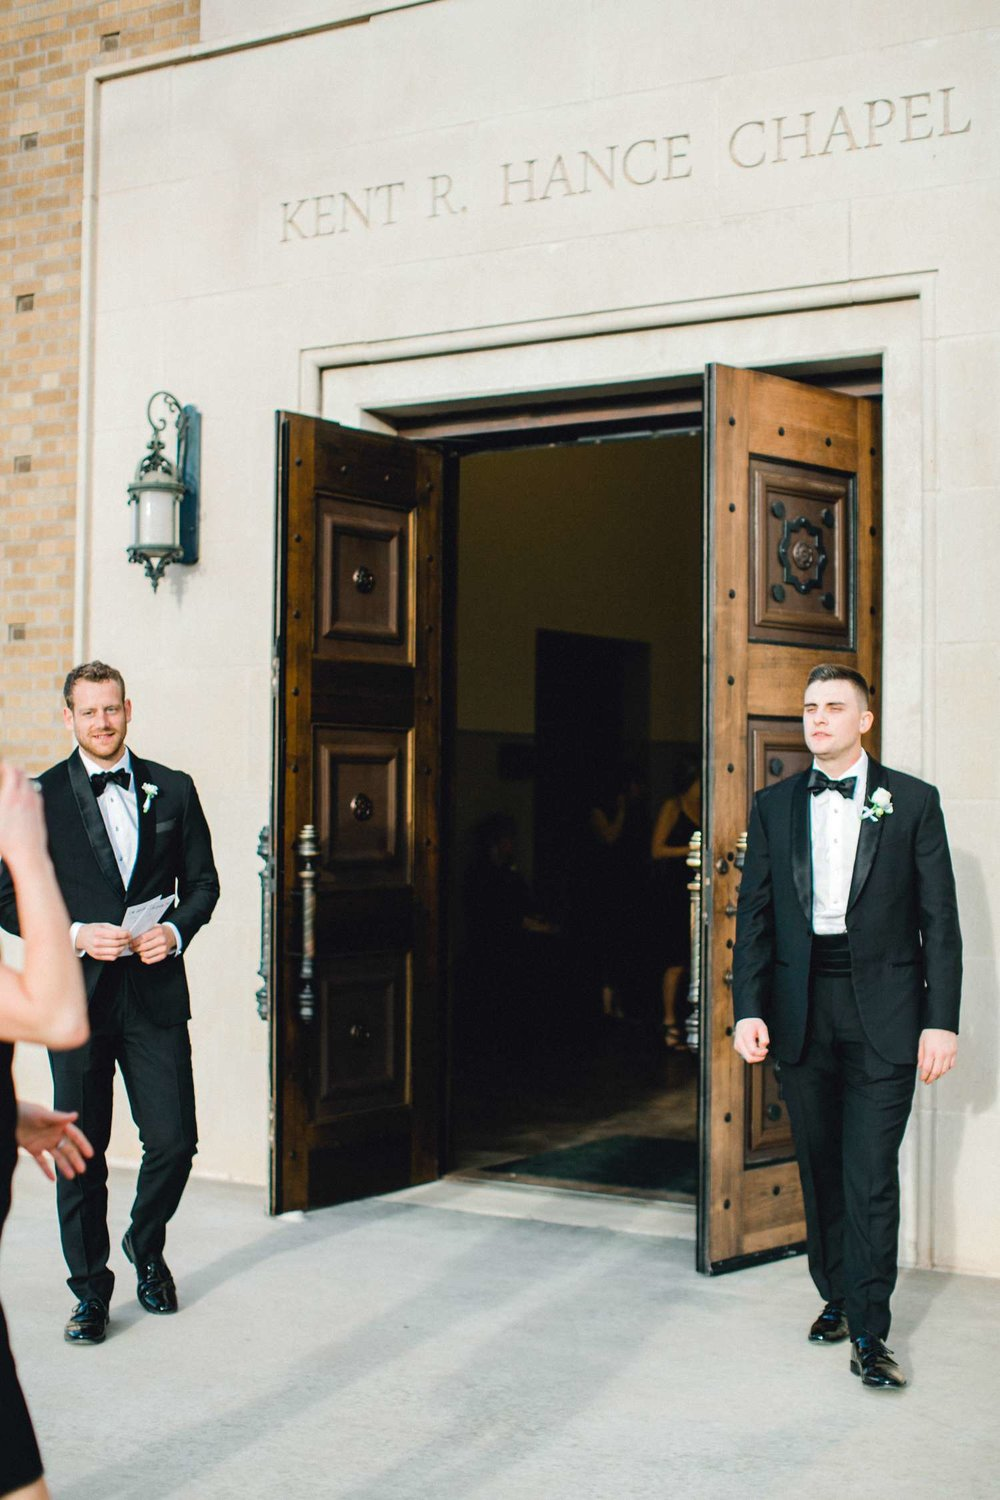 MARLEE+LLOYD+MORGAN+ALLEEJ+TEXAS+TECH+MERKET+ALUMNI+WEDDINGS+LUBBOCK+WEST+TABLE+CLASSIC+SPAIN_0141.jpg